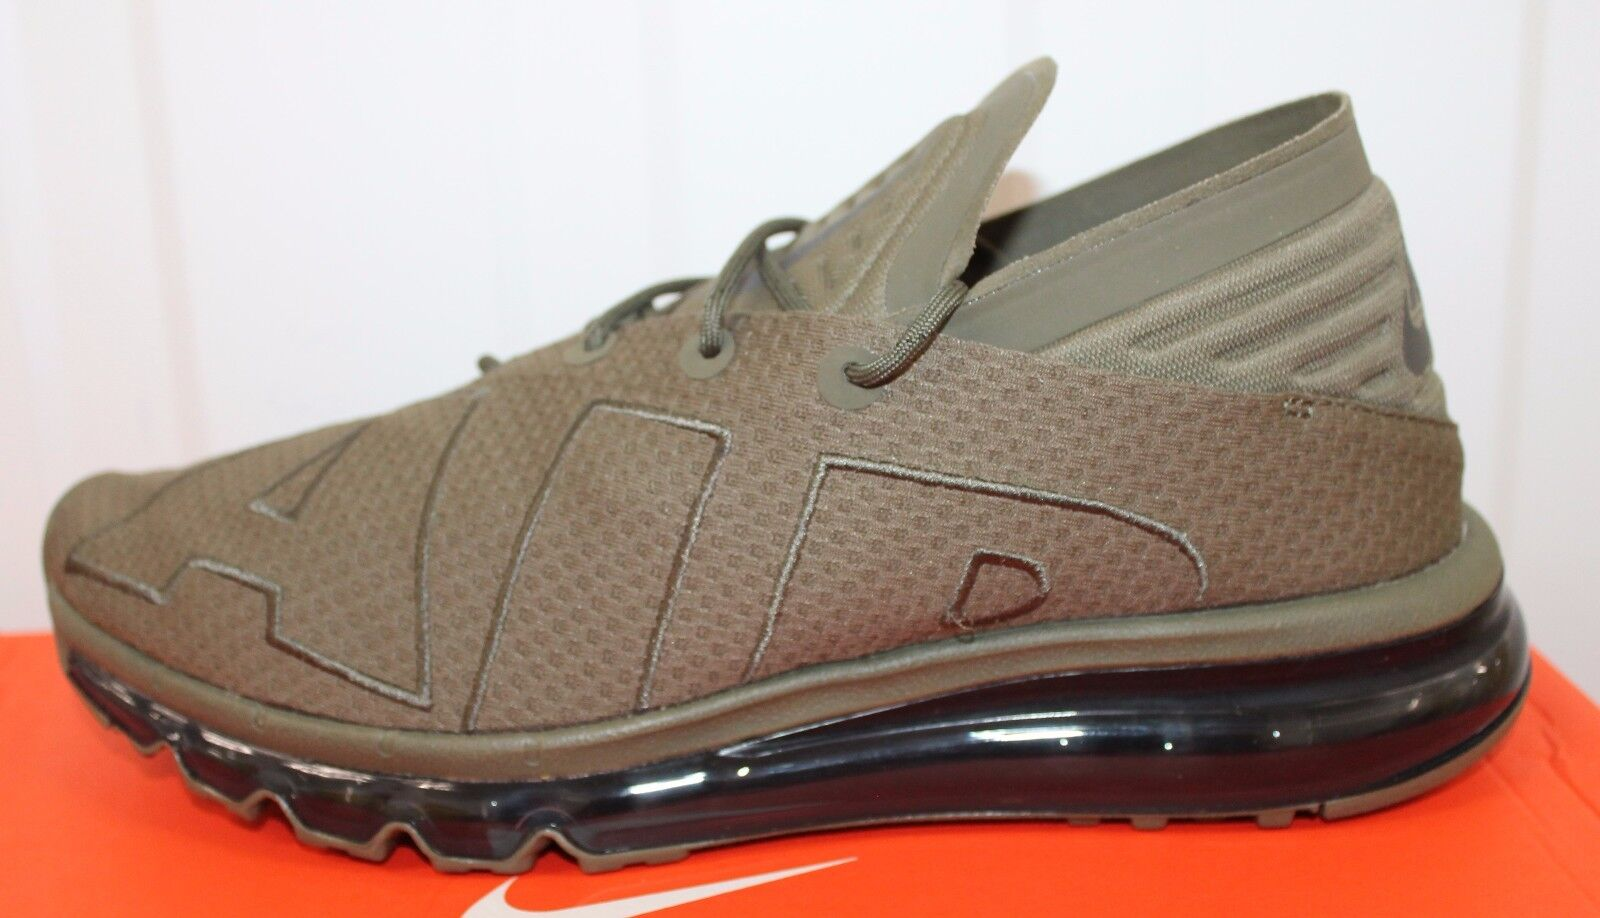 NIKE AIR MAX FLAIR MED OLIVE-SEQUOIA  MEN,S 942236-200 BNIB   OLIVE-SEQUOIA    50 604464